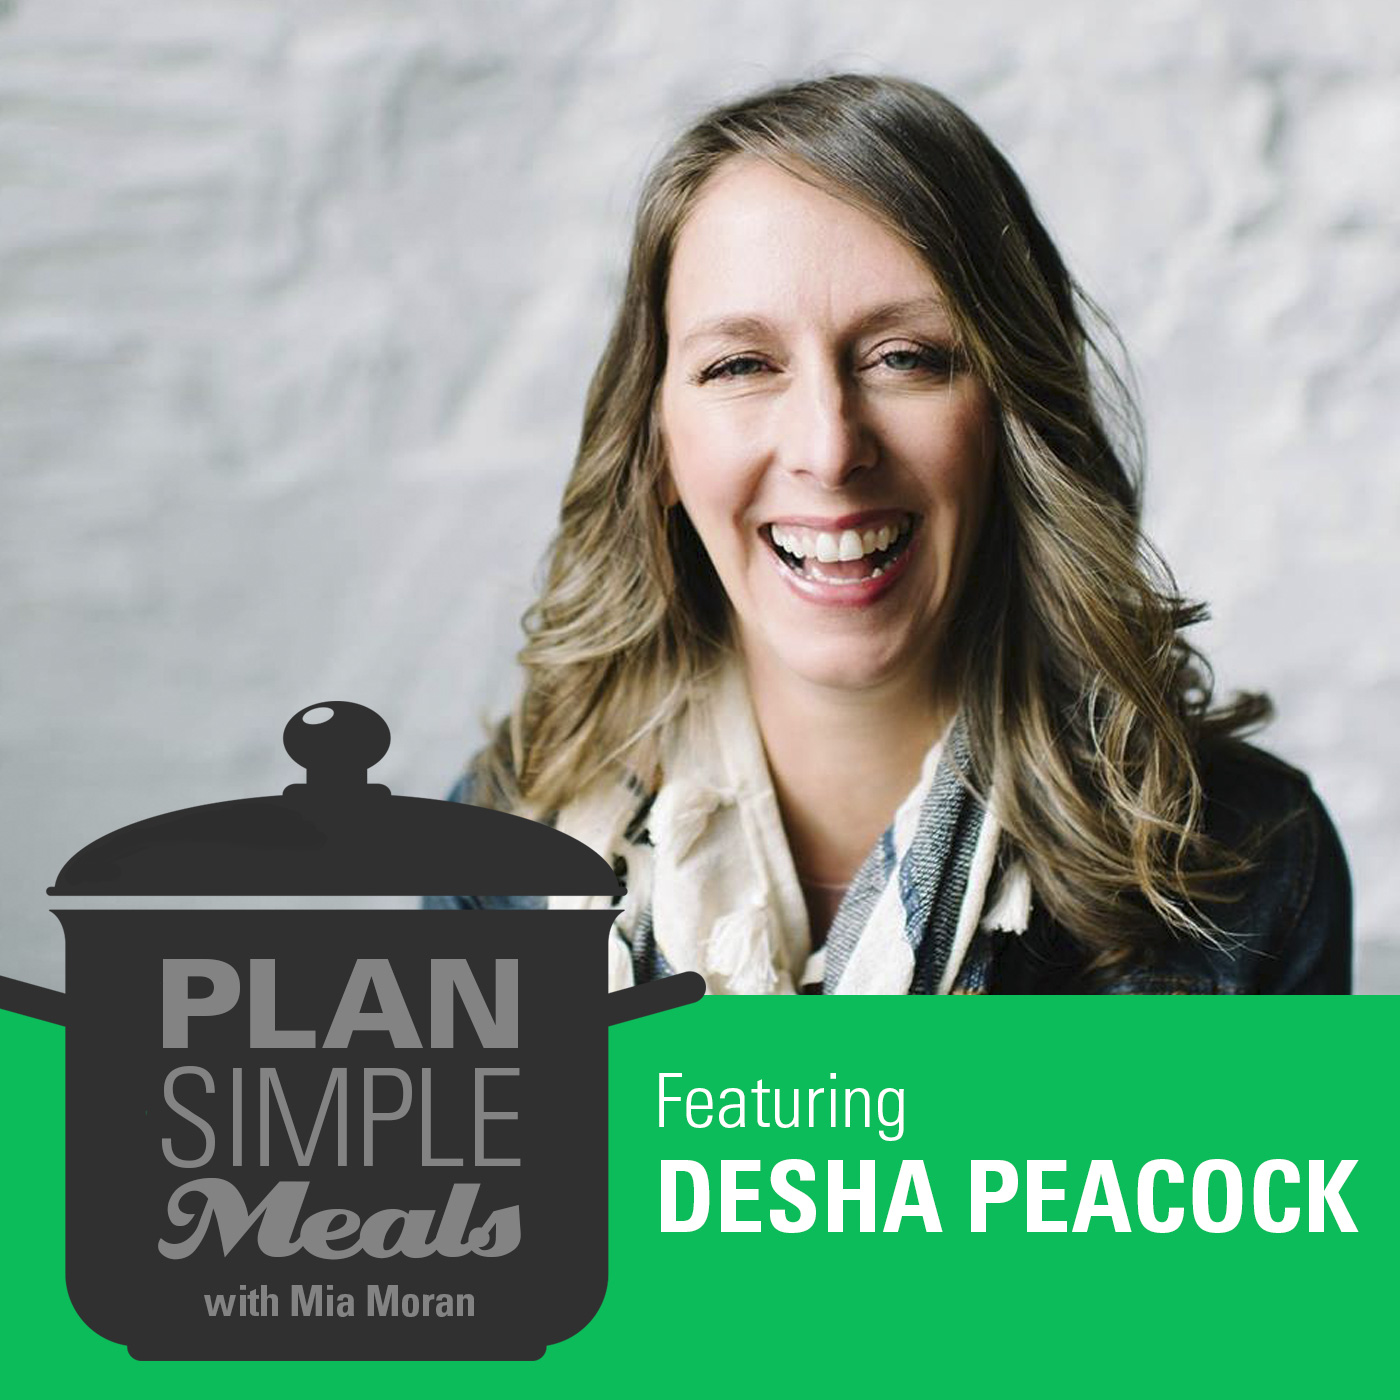 Make Space With Desha Peacock